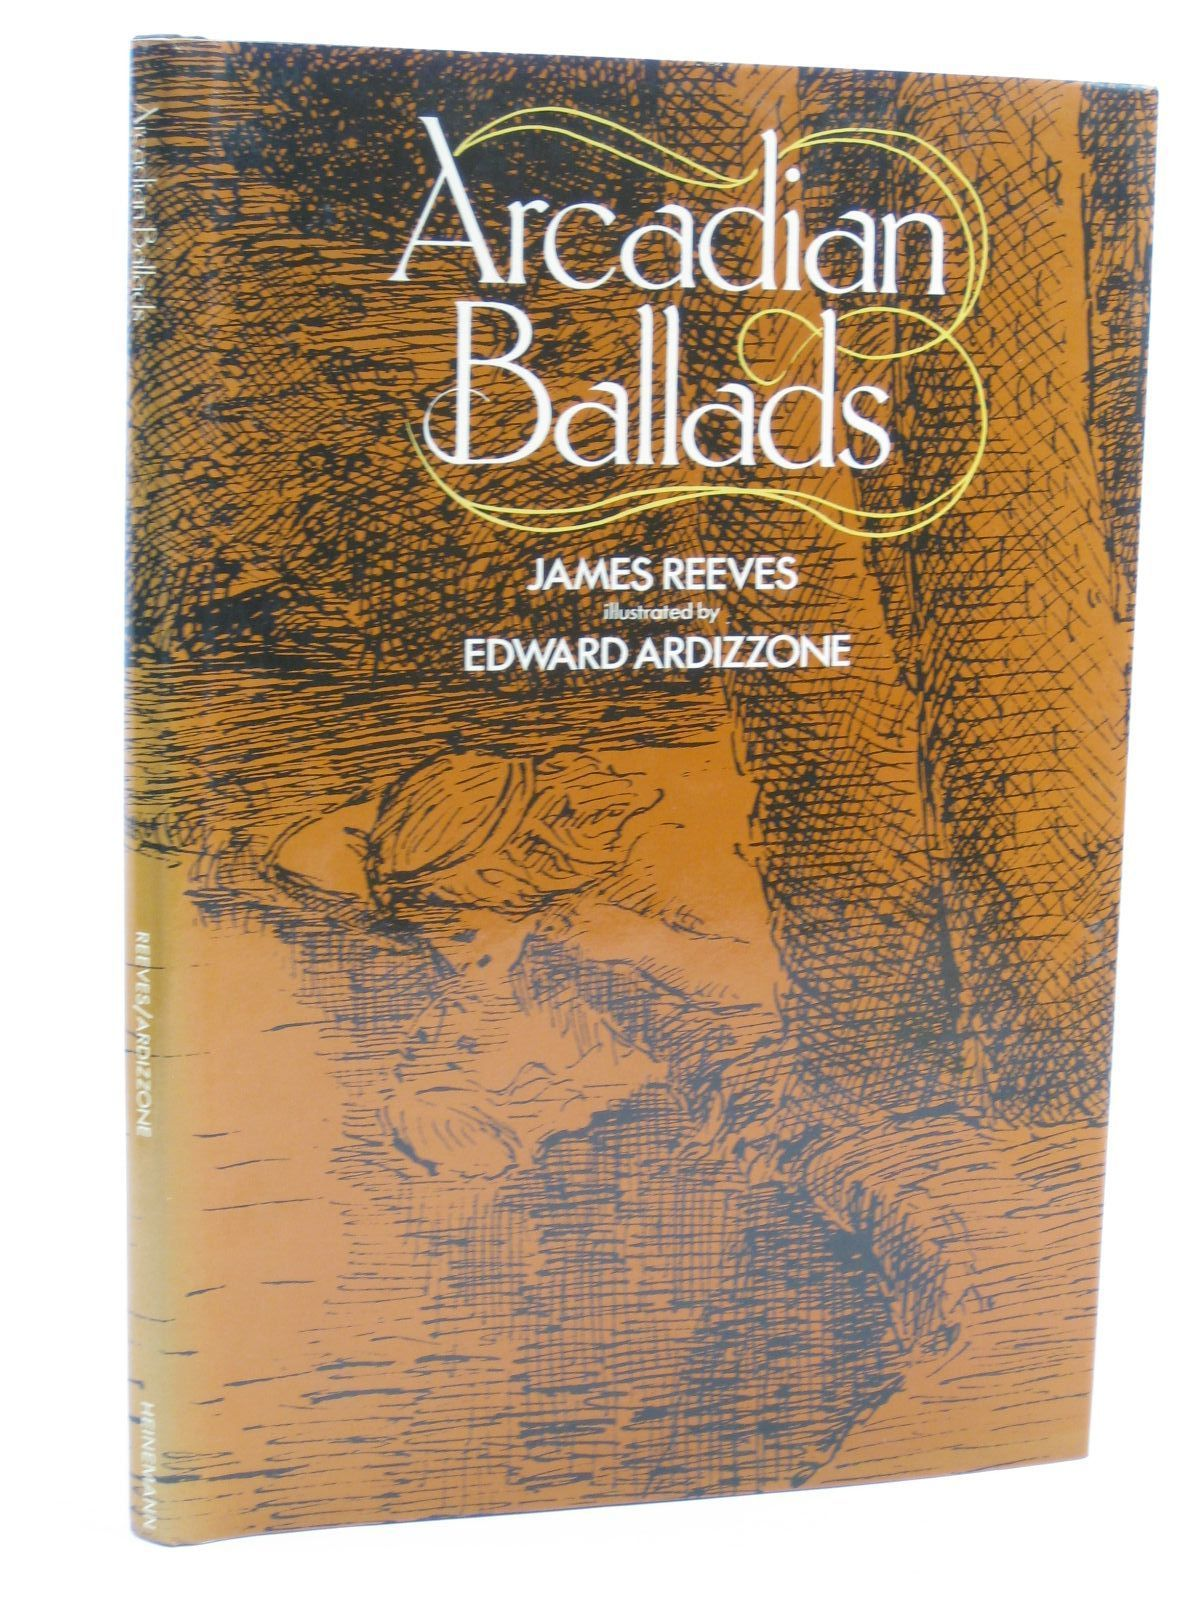 Photo of ARCADIAN BALLADS written by Reeves, James illustrated by Ardizzone, Edward published by Heinemann Educational Books (STOCK CODE: 1406638)  for sale by Stella & Rose's Books